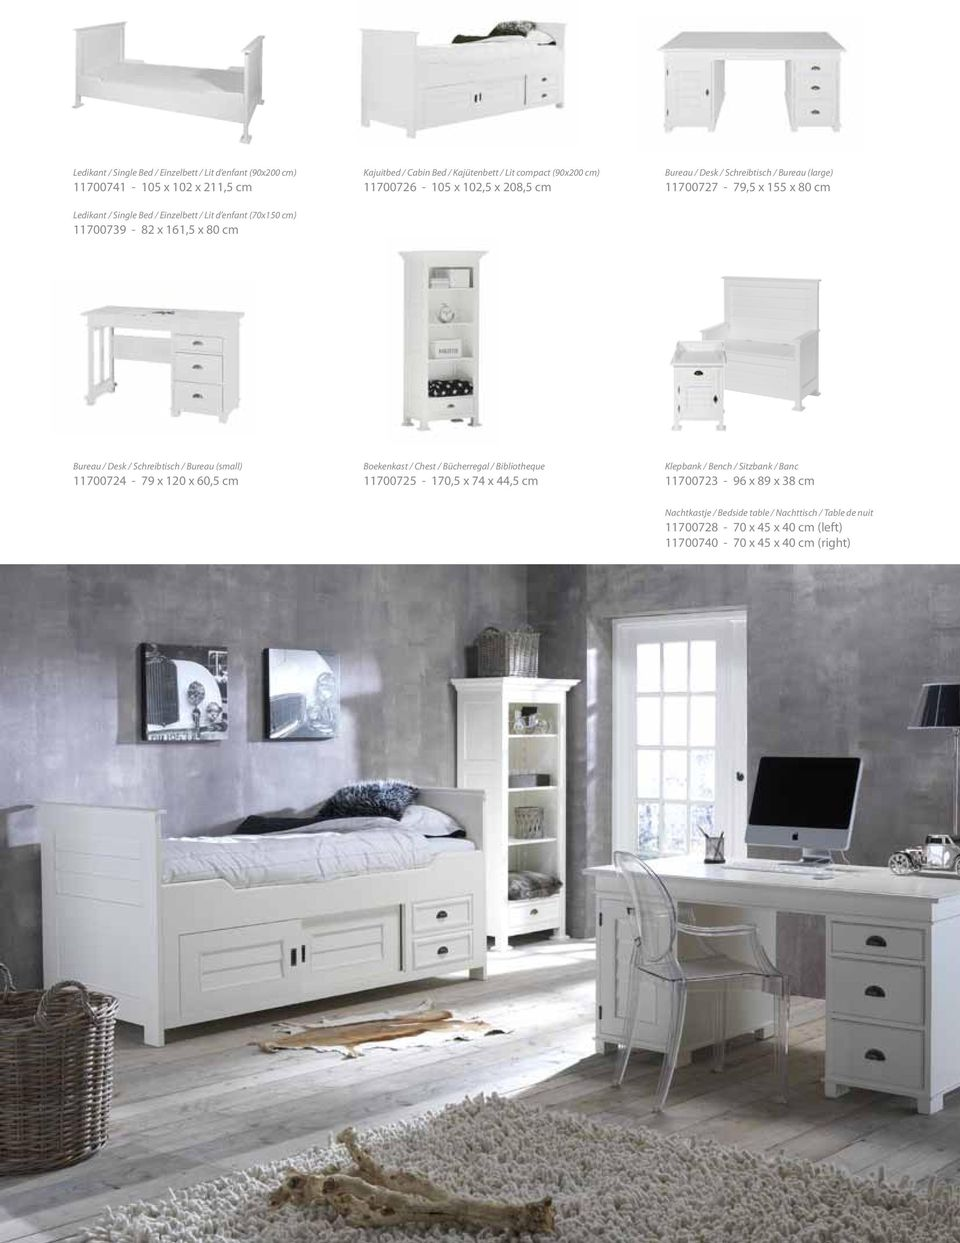 COLLECTION. kidsmill. exclusive furniture and accessories for baby ...